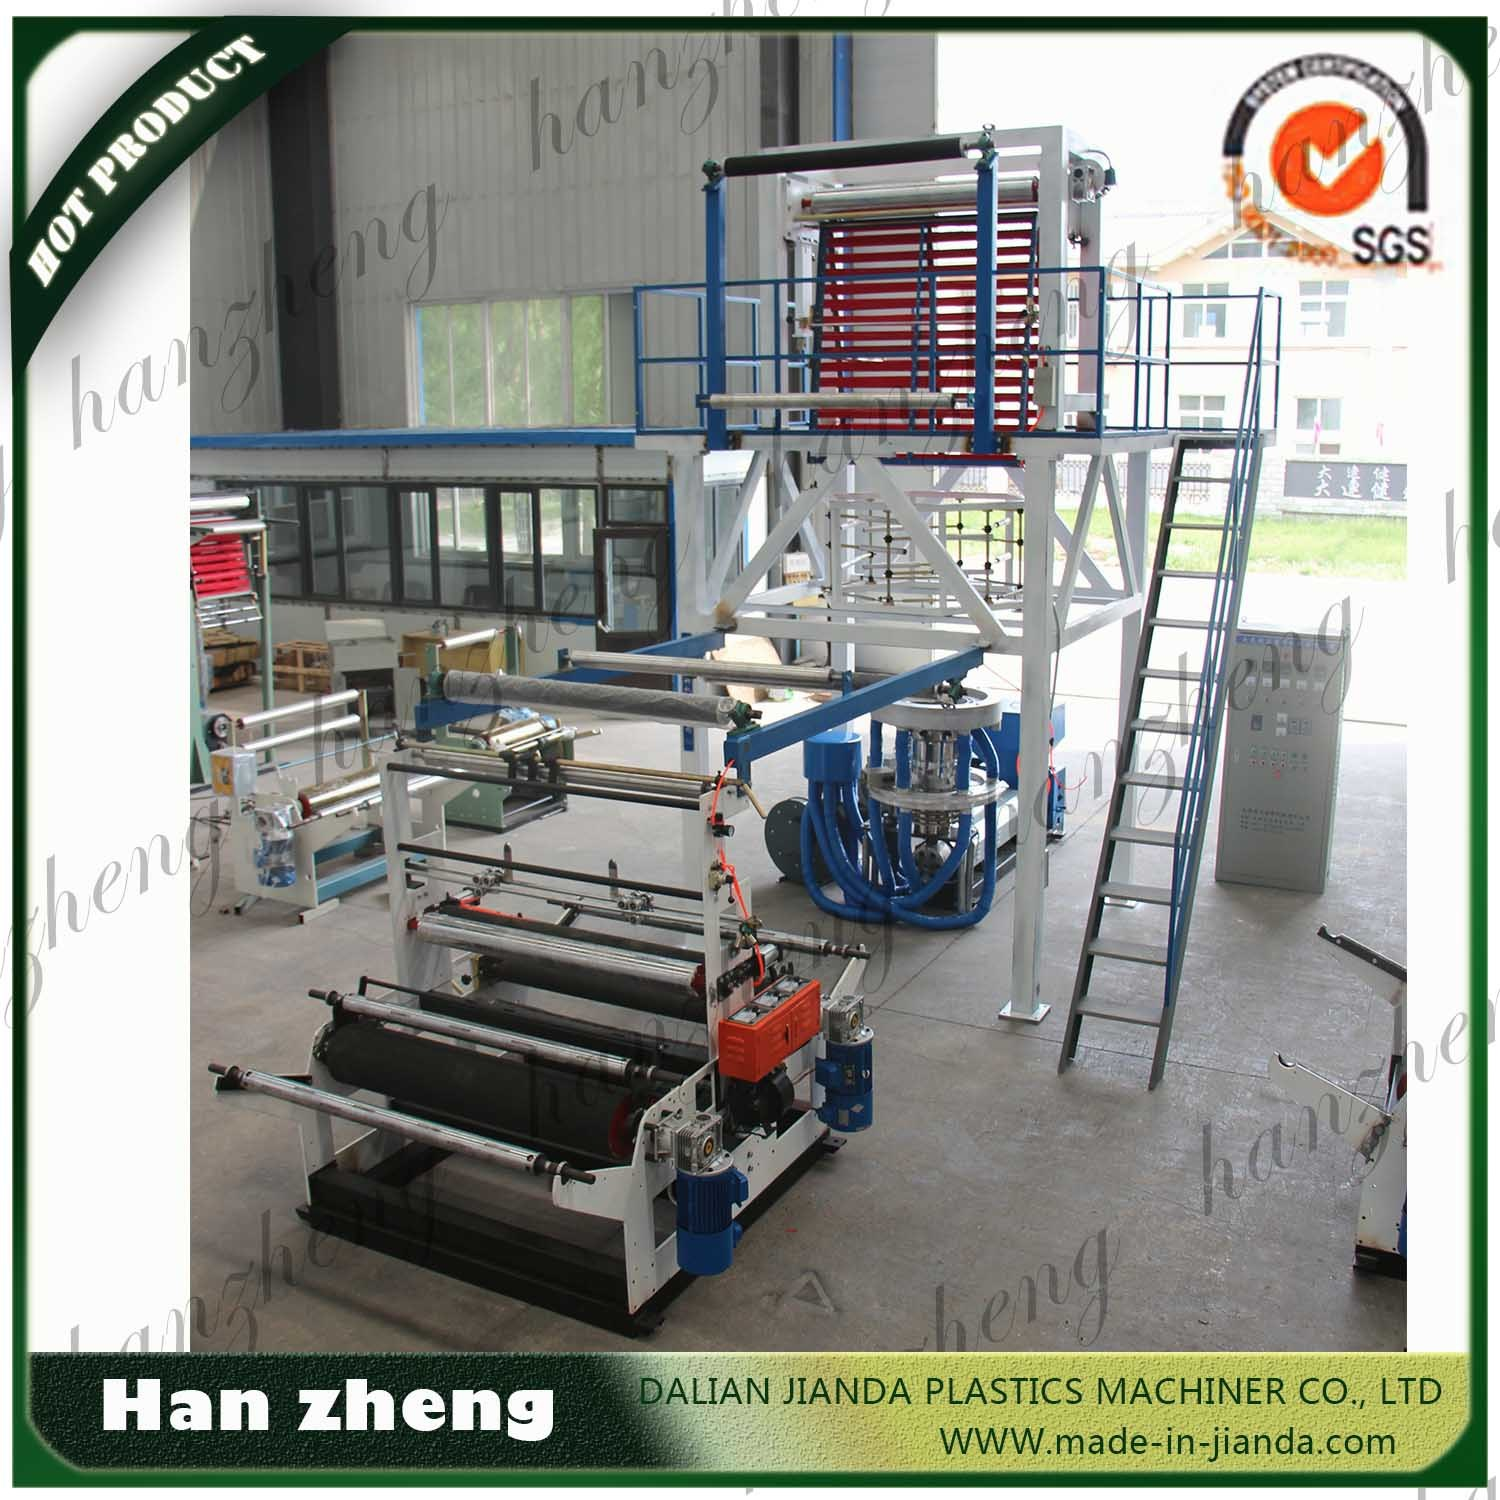 Z40-700 High Speed HDPE LDPE Single Screw Double Die Head Plastic Film Blowing Machine